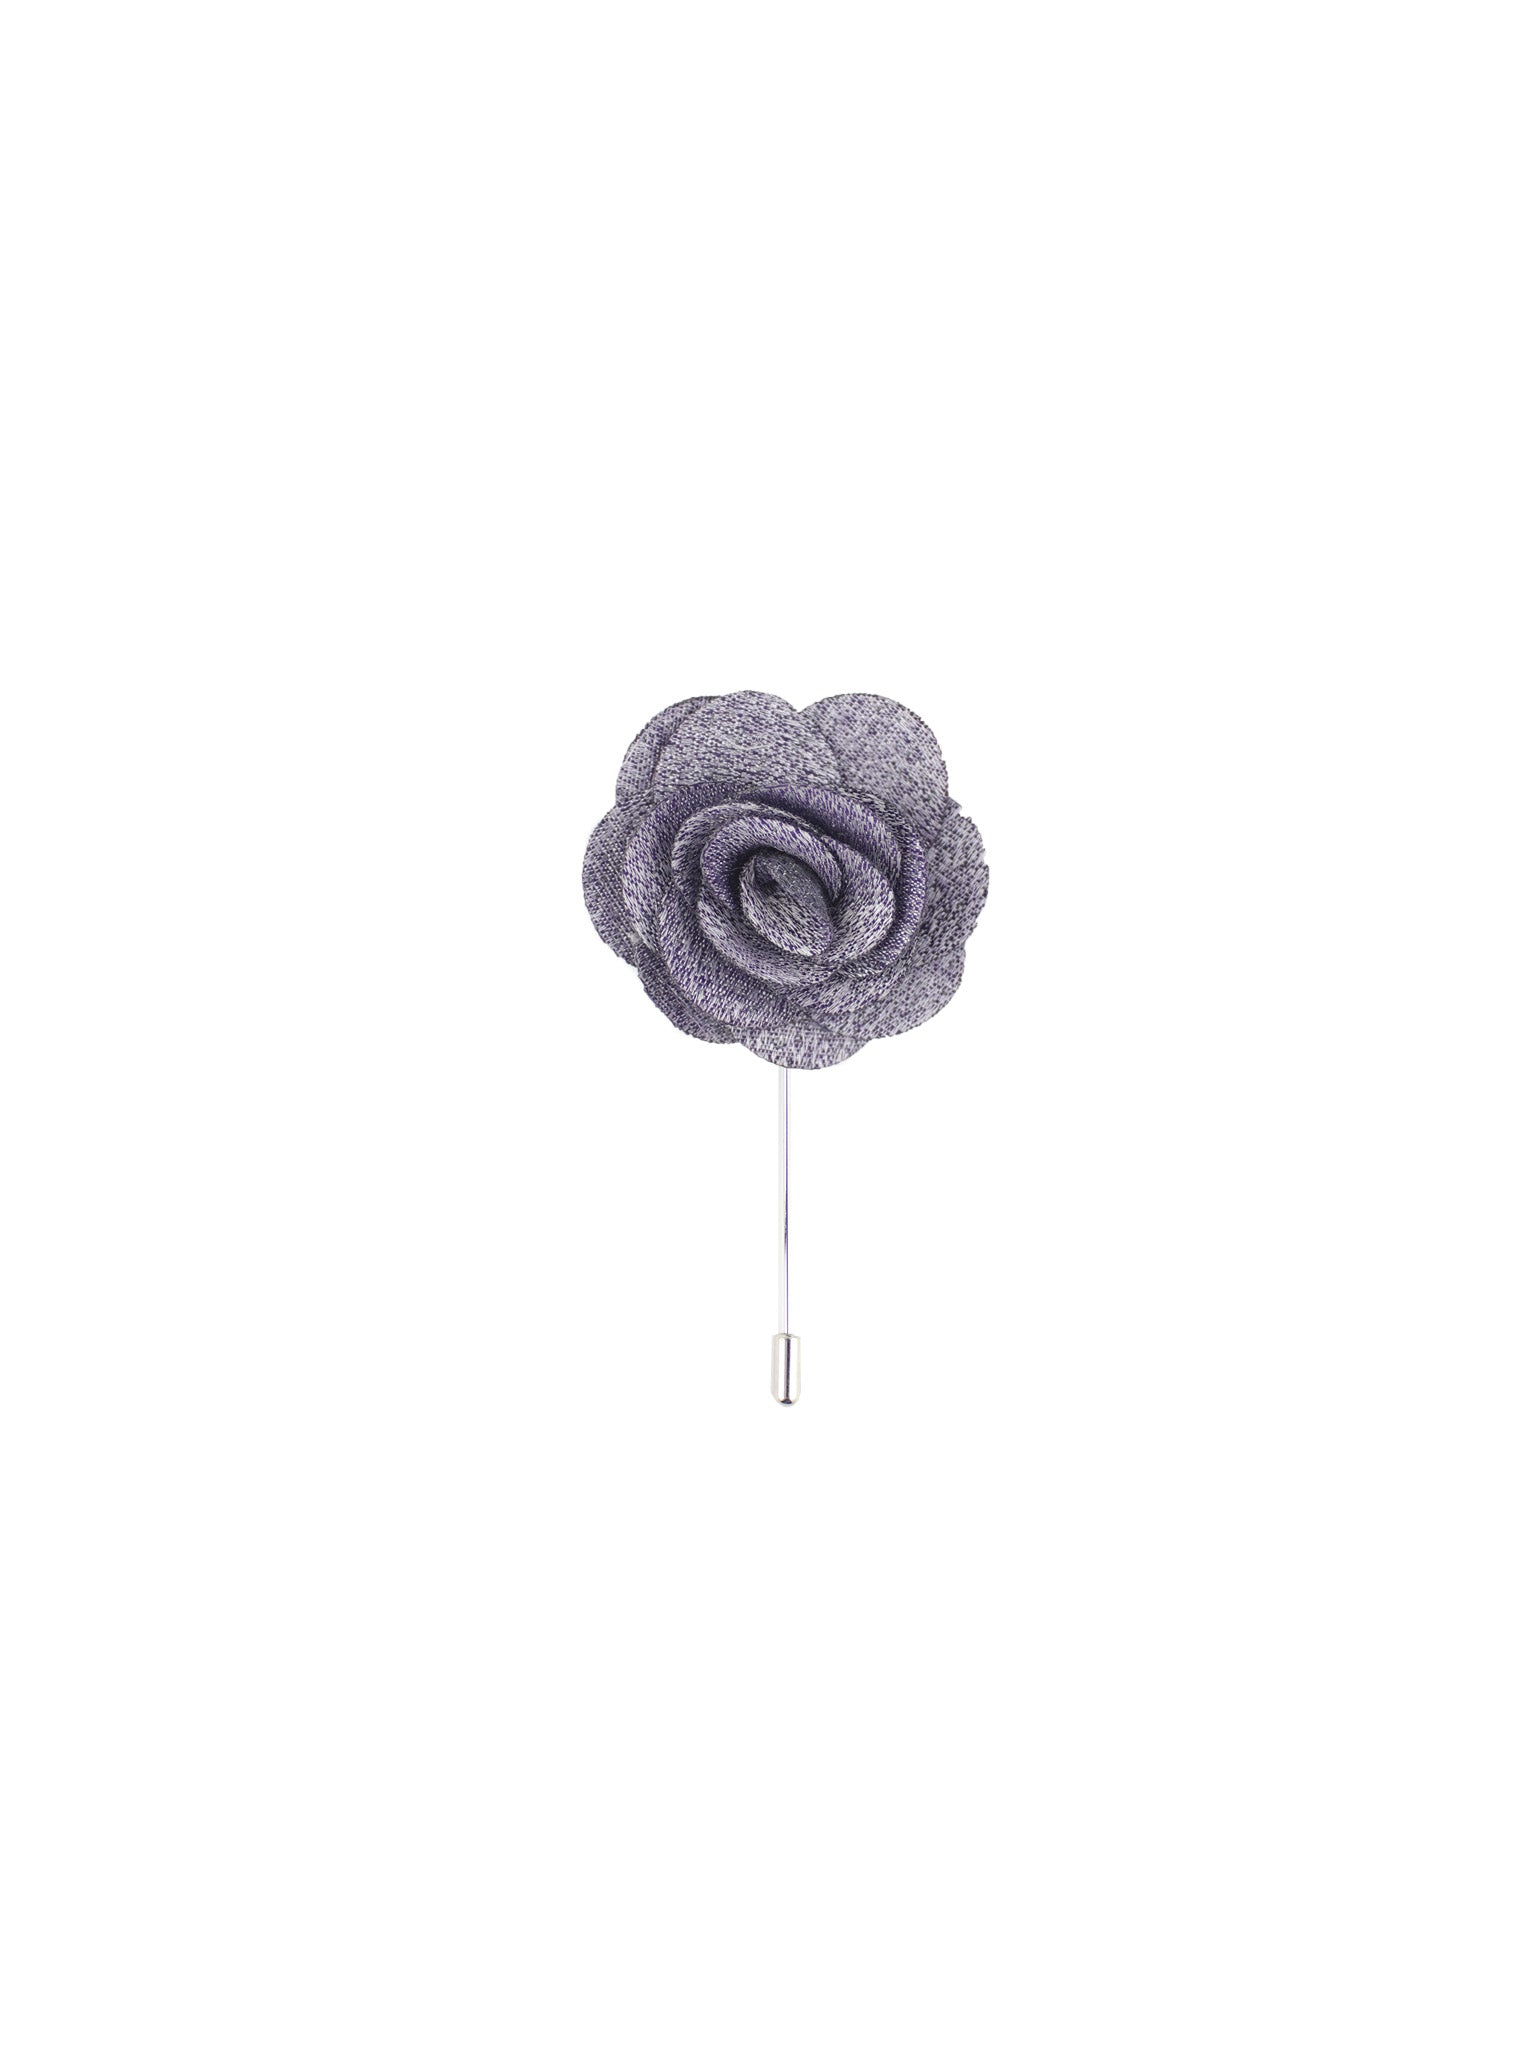 Lilac Textured Lapel Pin from DIBI